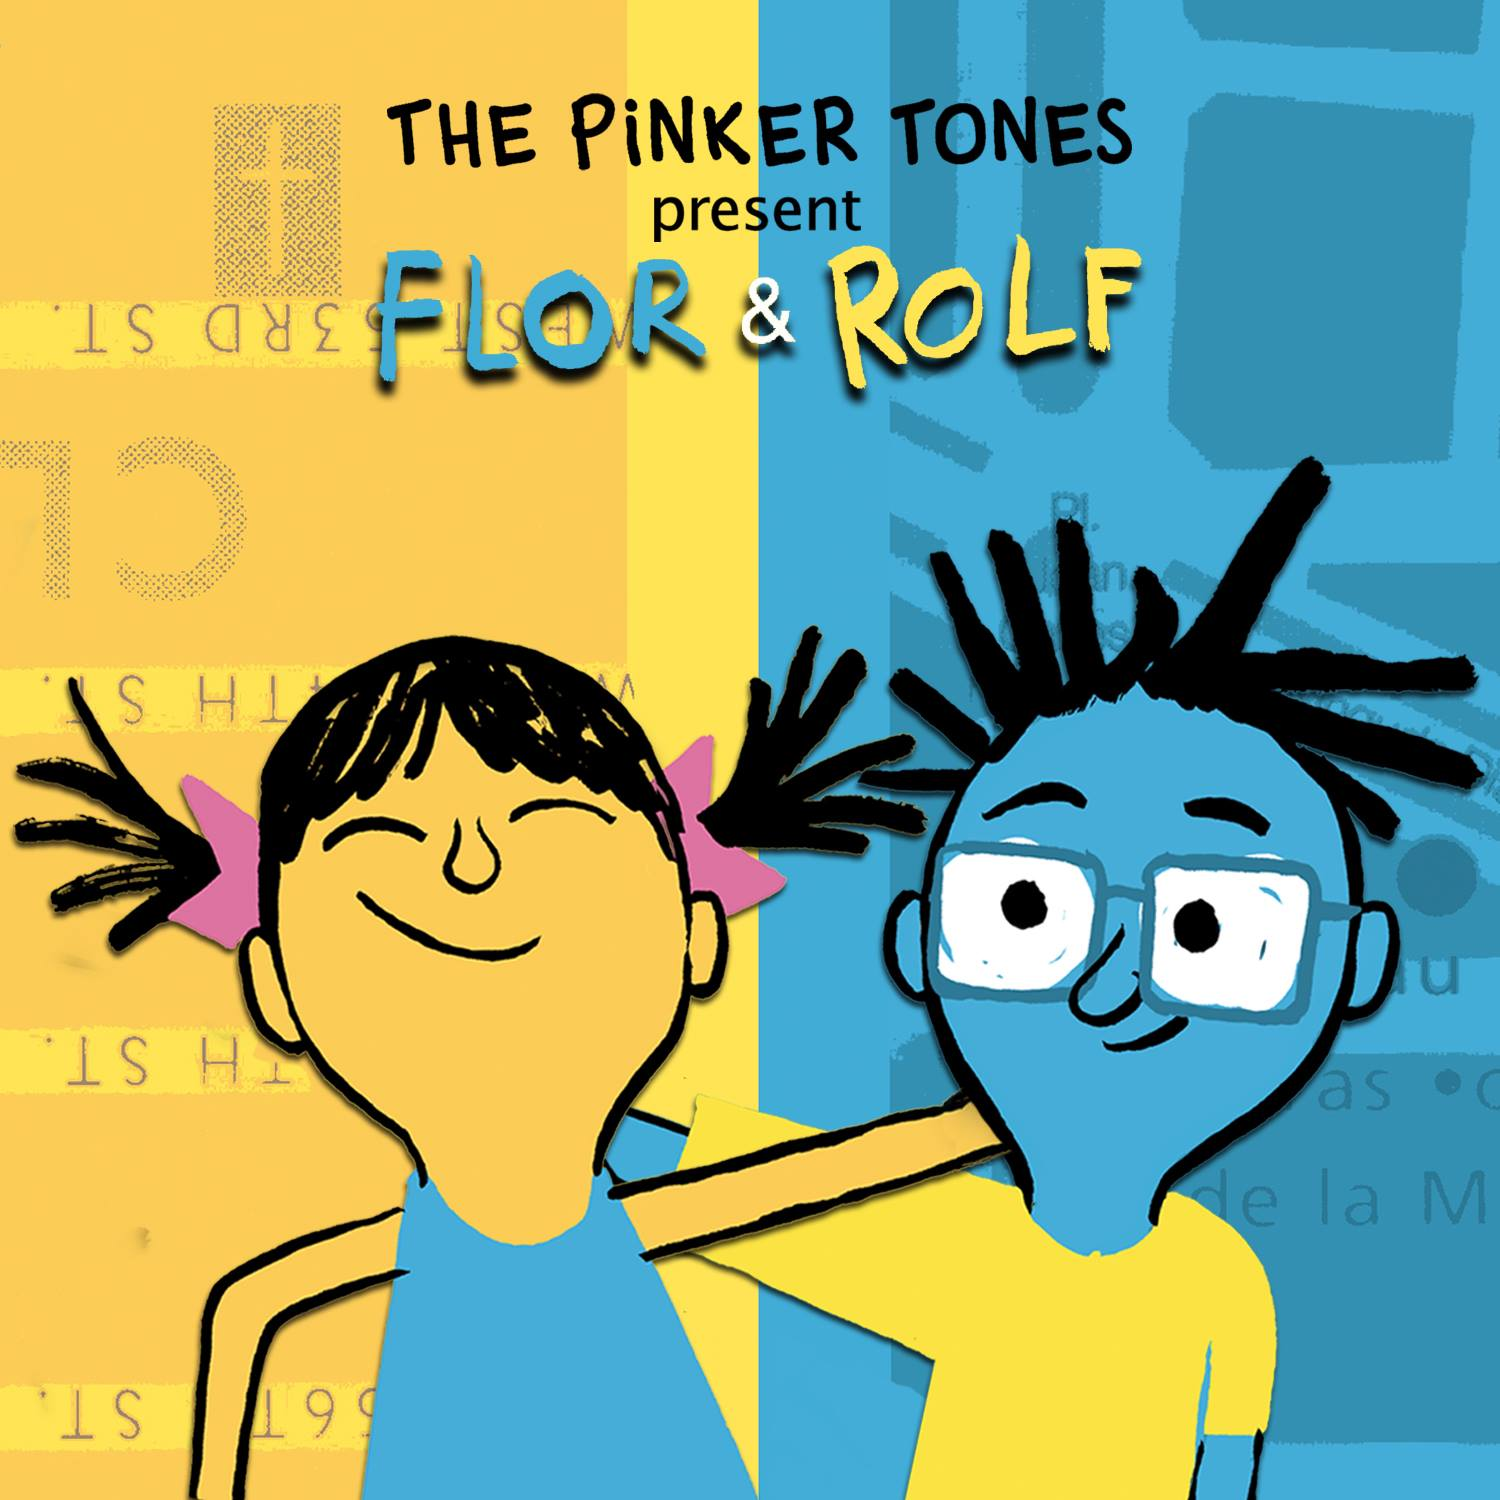 The Pinker Tones' latest record and storybook for children, was featured at a LAMC event.